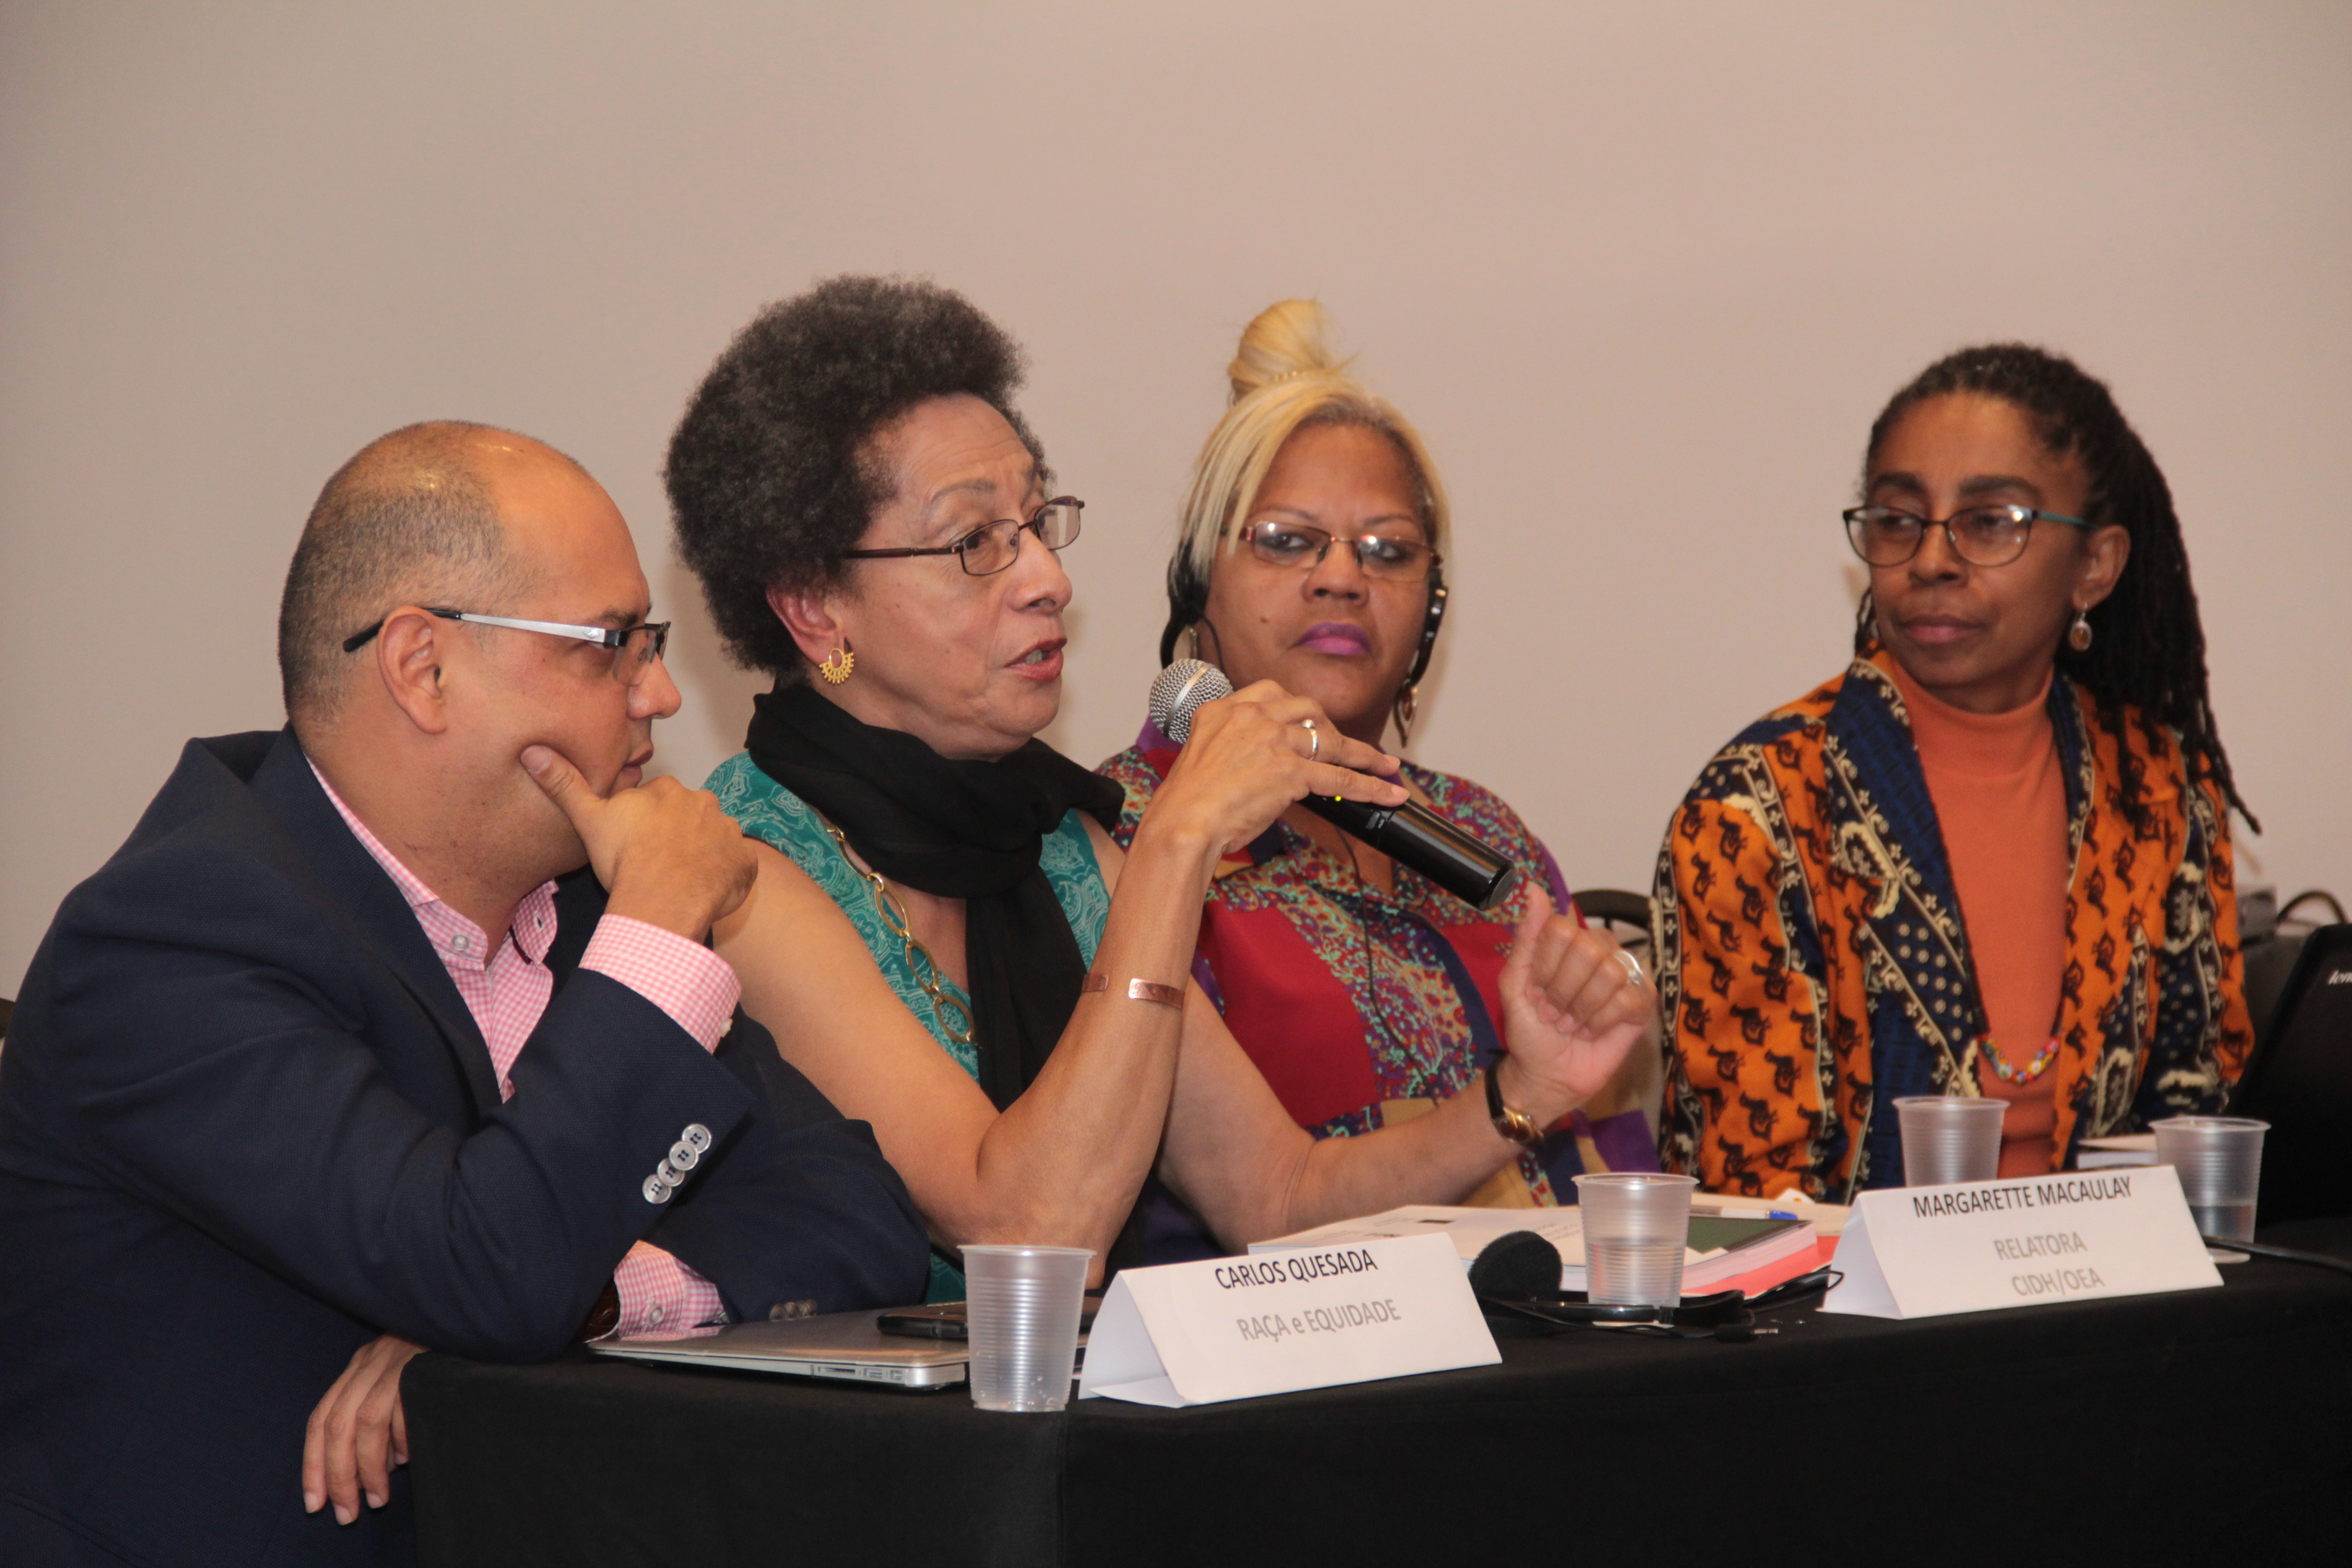 Commissioner Margarette May Macaulay, Rapporteur on the Rights of Women and Rapporteur on the Rights of Afro-descendants and against Racial Discrimination, Visits Brazil with the Support of the Institute on Race, Equality and Human Rights